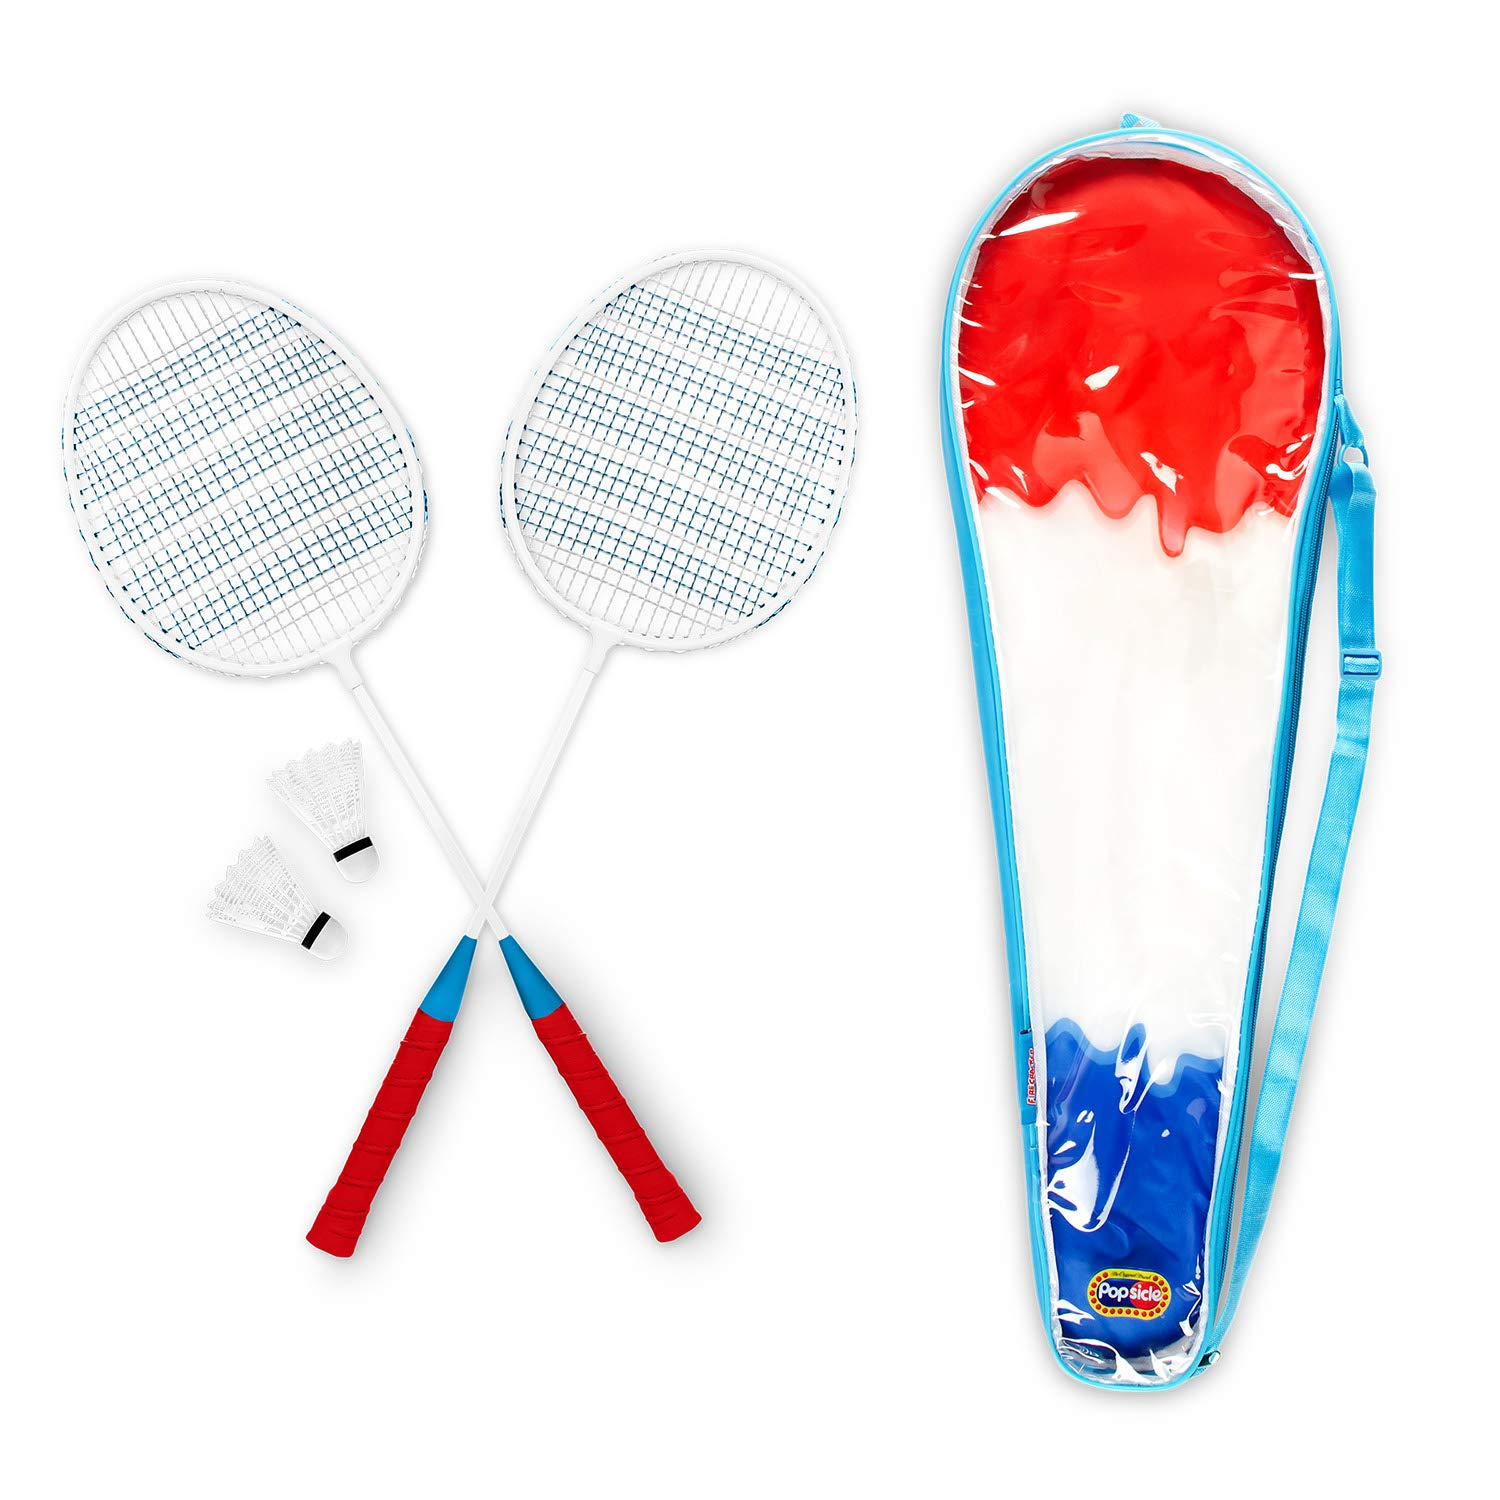 MVMT Popsicle Badminton Set - 2 Rackets, 3 Shuttles, Carrying Case - Colorful, Fun Lawn Games - Family, Beginner, Starter (Firecracker)